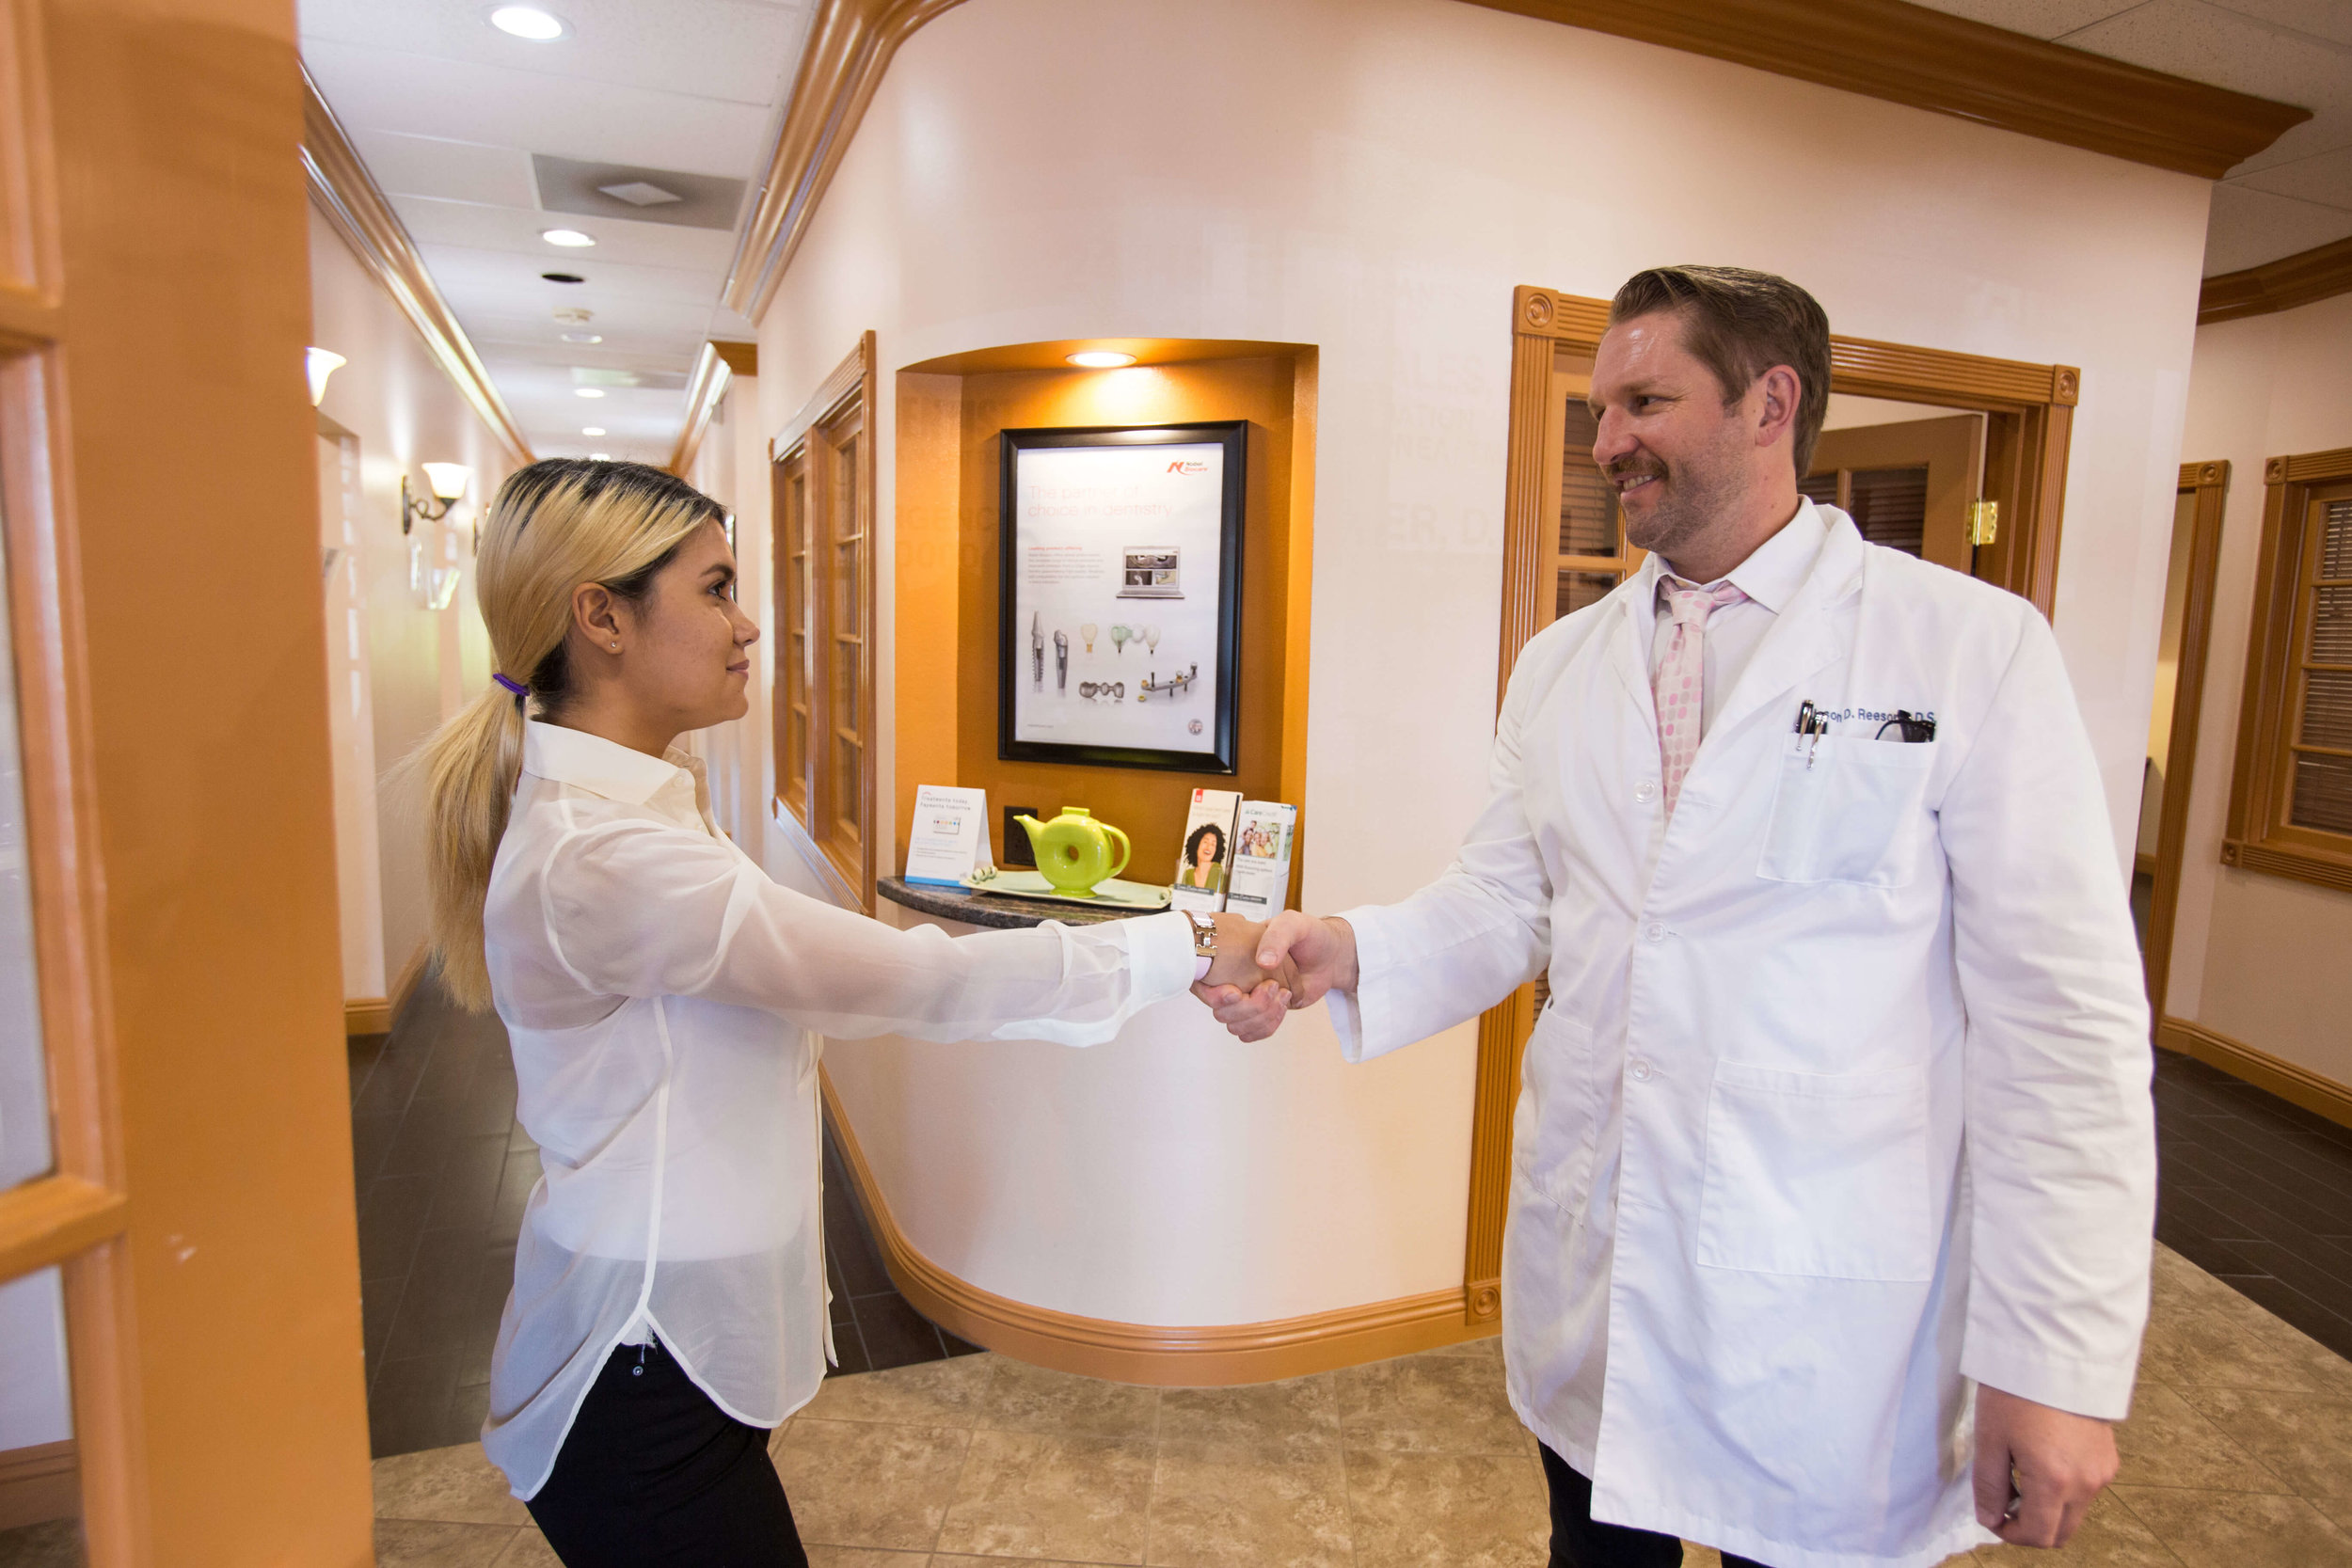 Town Center Dentistry in Rancho BErnardo treaty our customers well. Read our yelp reviews to see happy dental patients at Town Center Dentistry